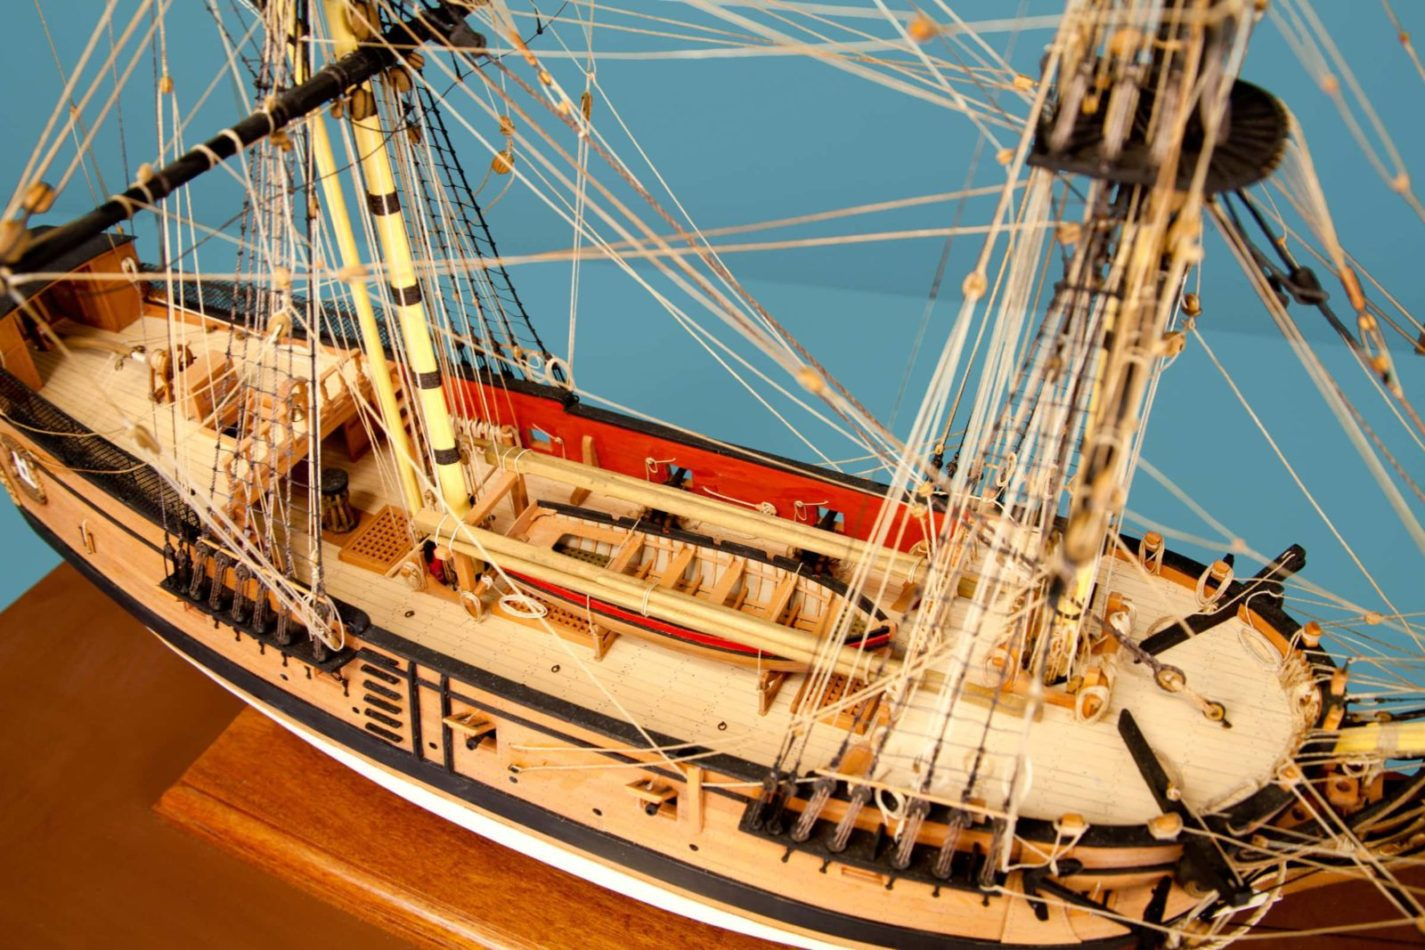 Detail of the San Carlos model ship at the Ships of the World exhibit at San Mateo County History Museum